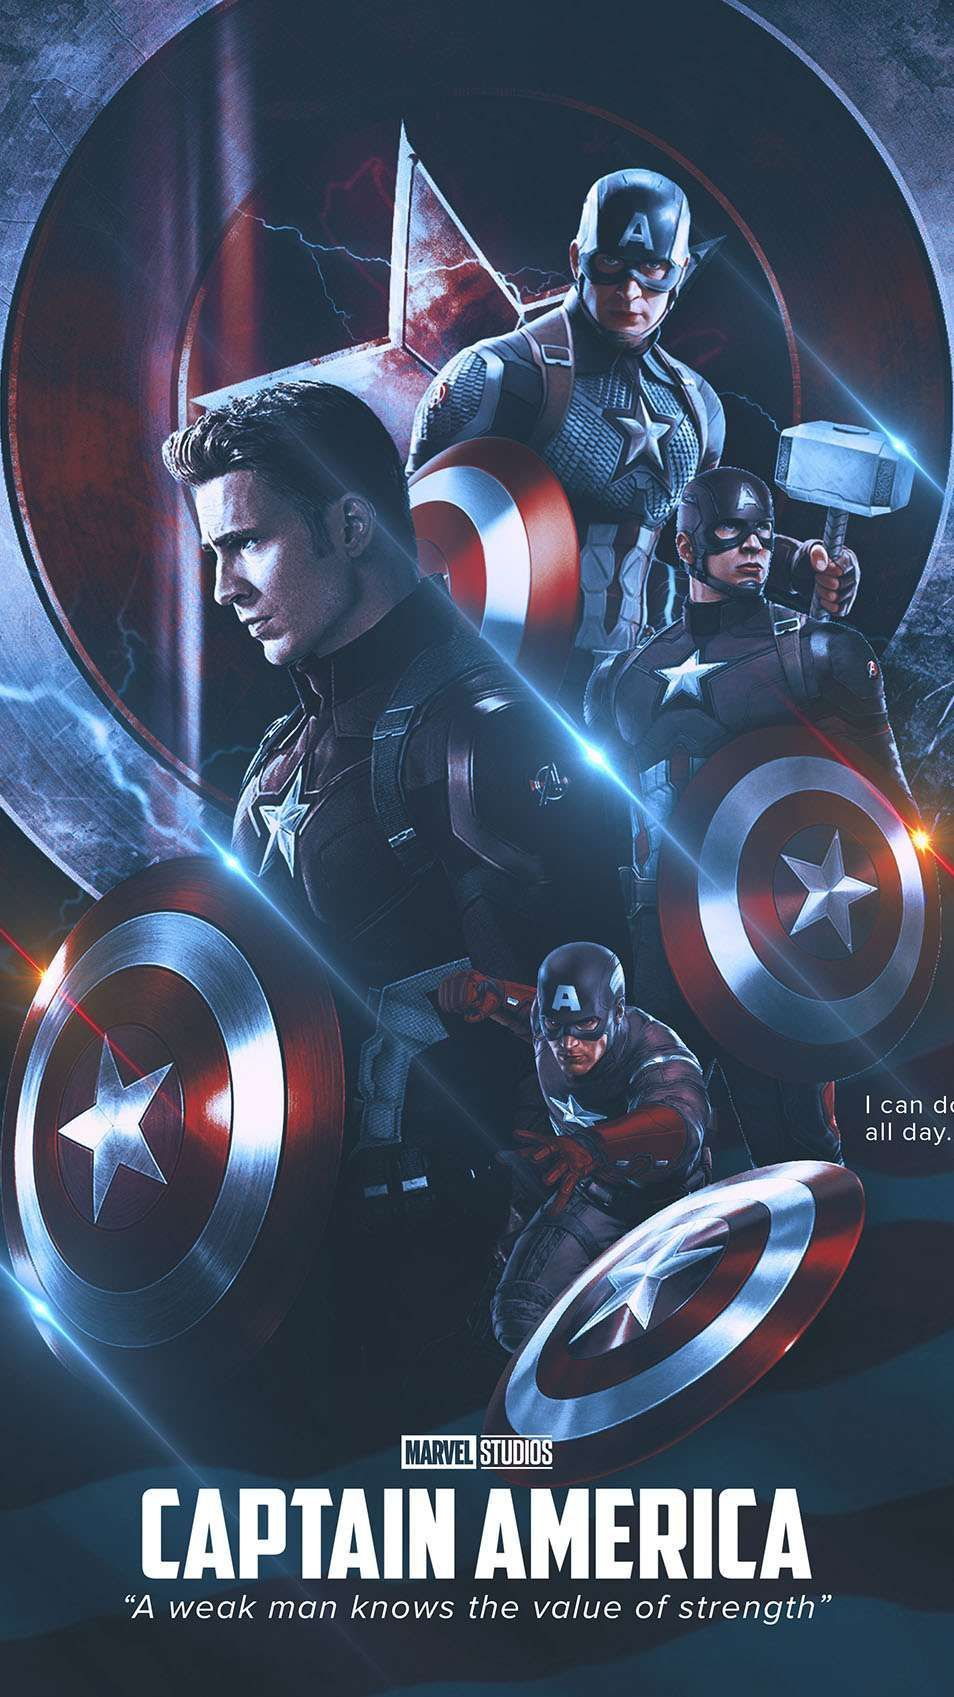 Captain America Wallpaper 4k Hd In 2020 Captain America Wallpaper Marvel Captain America Marvel Comics Wallpaper